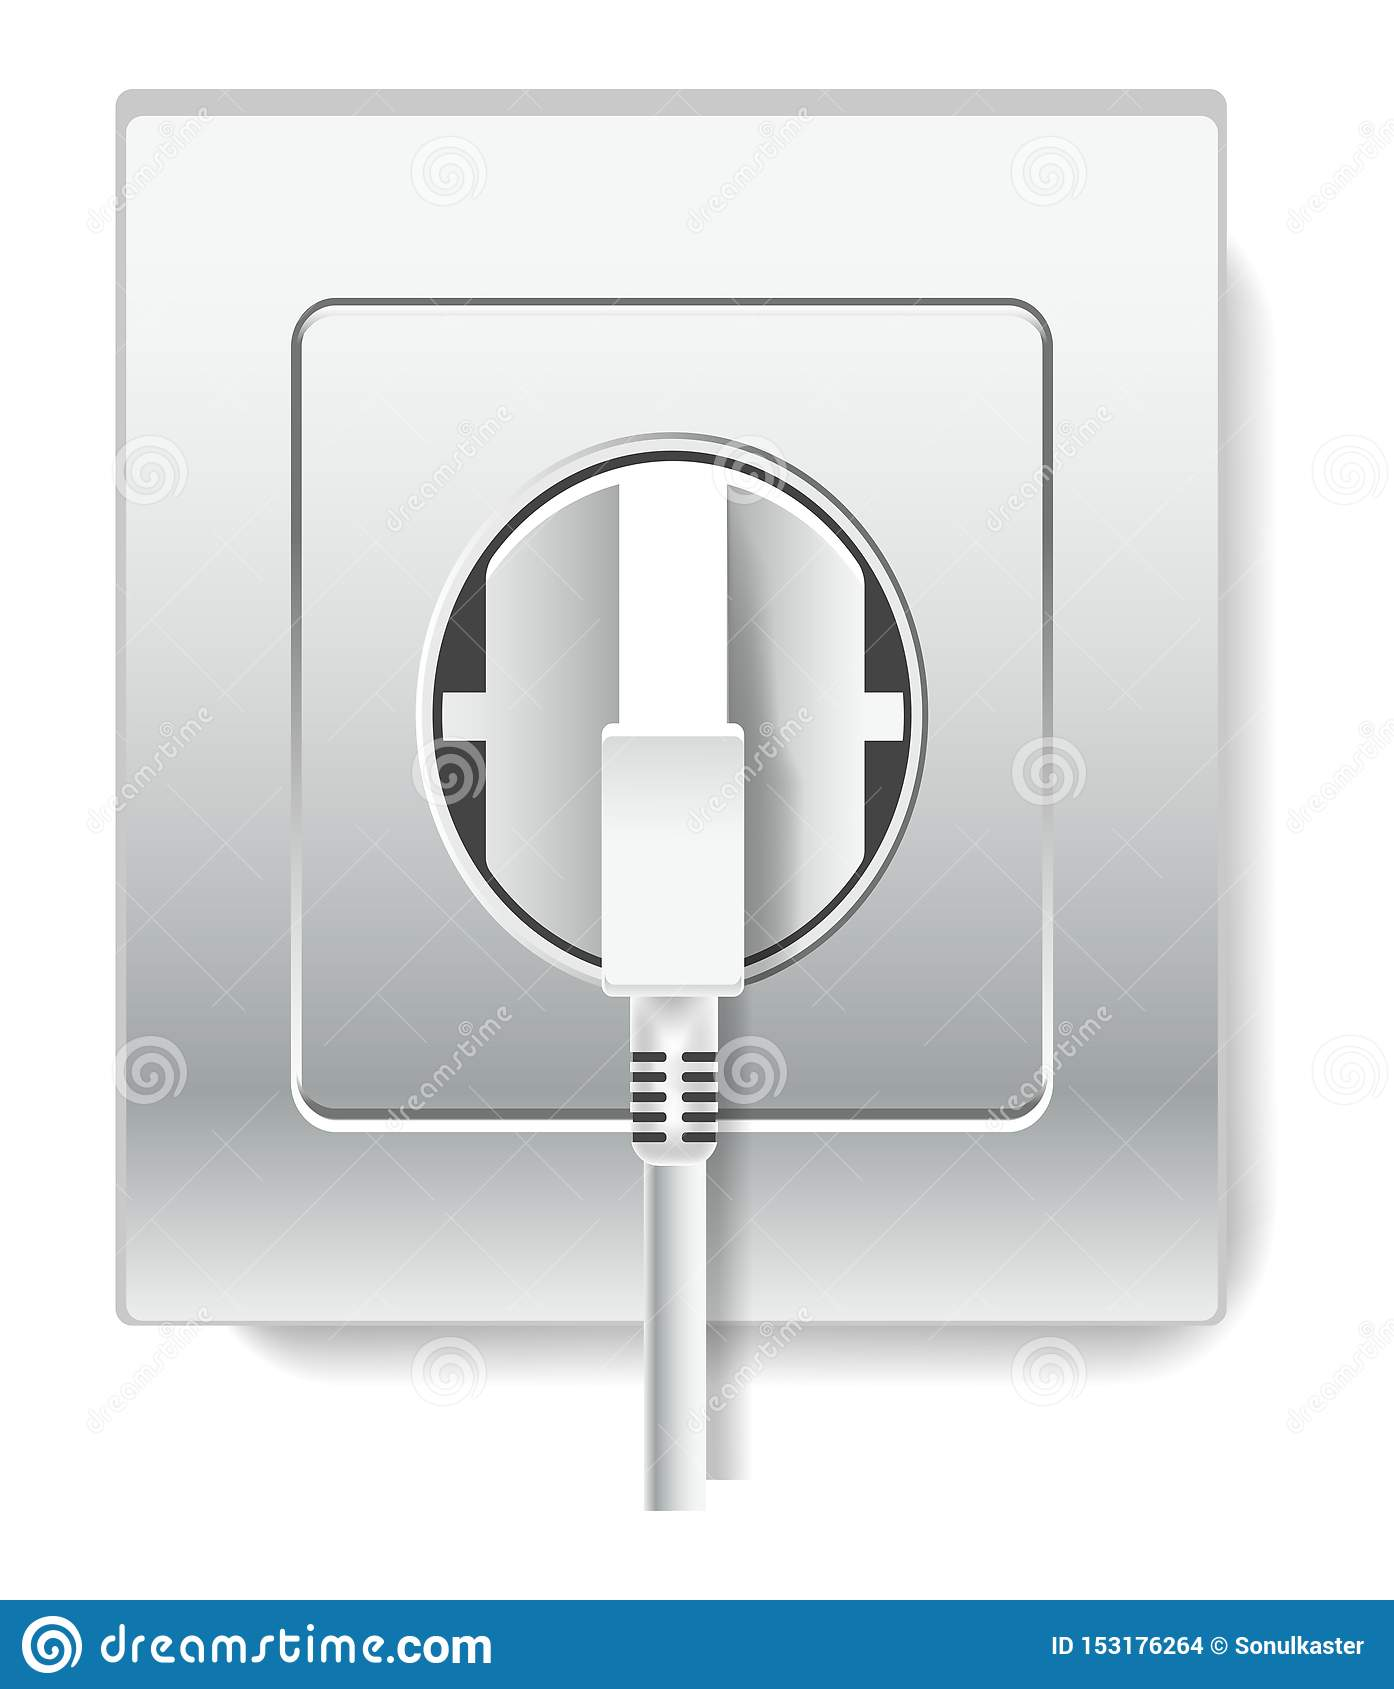 Electrical Plug Wiring For A House